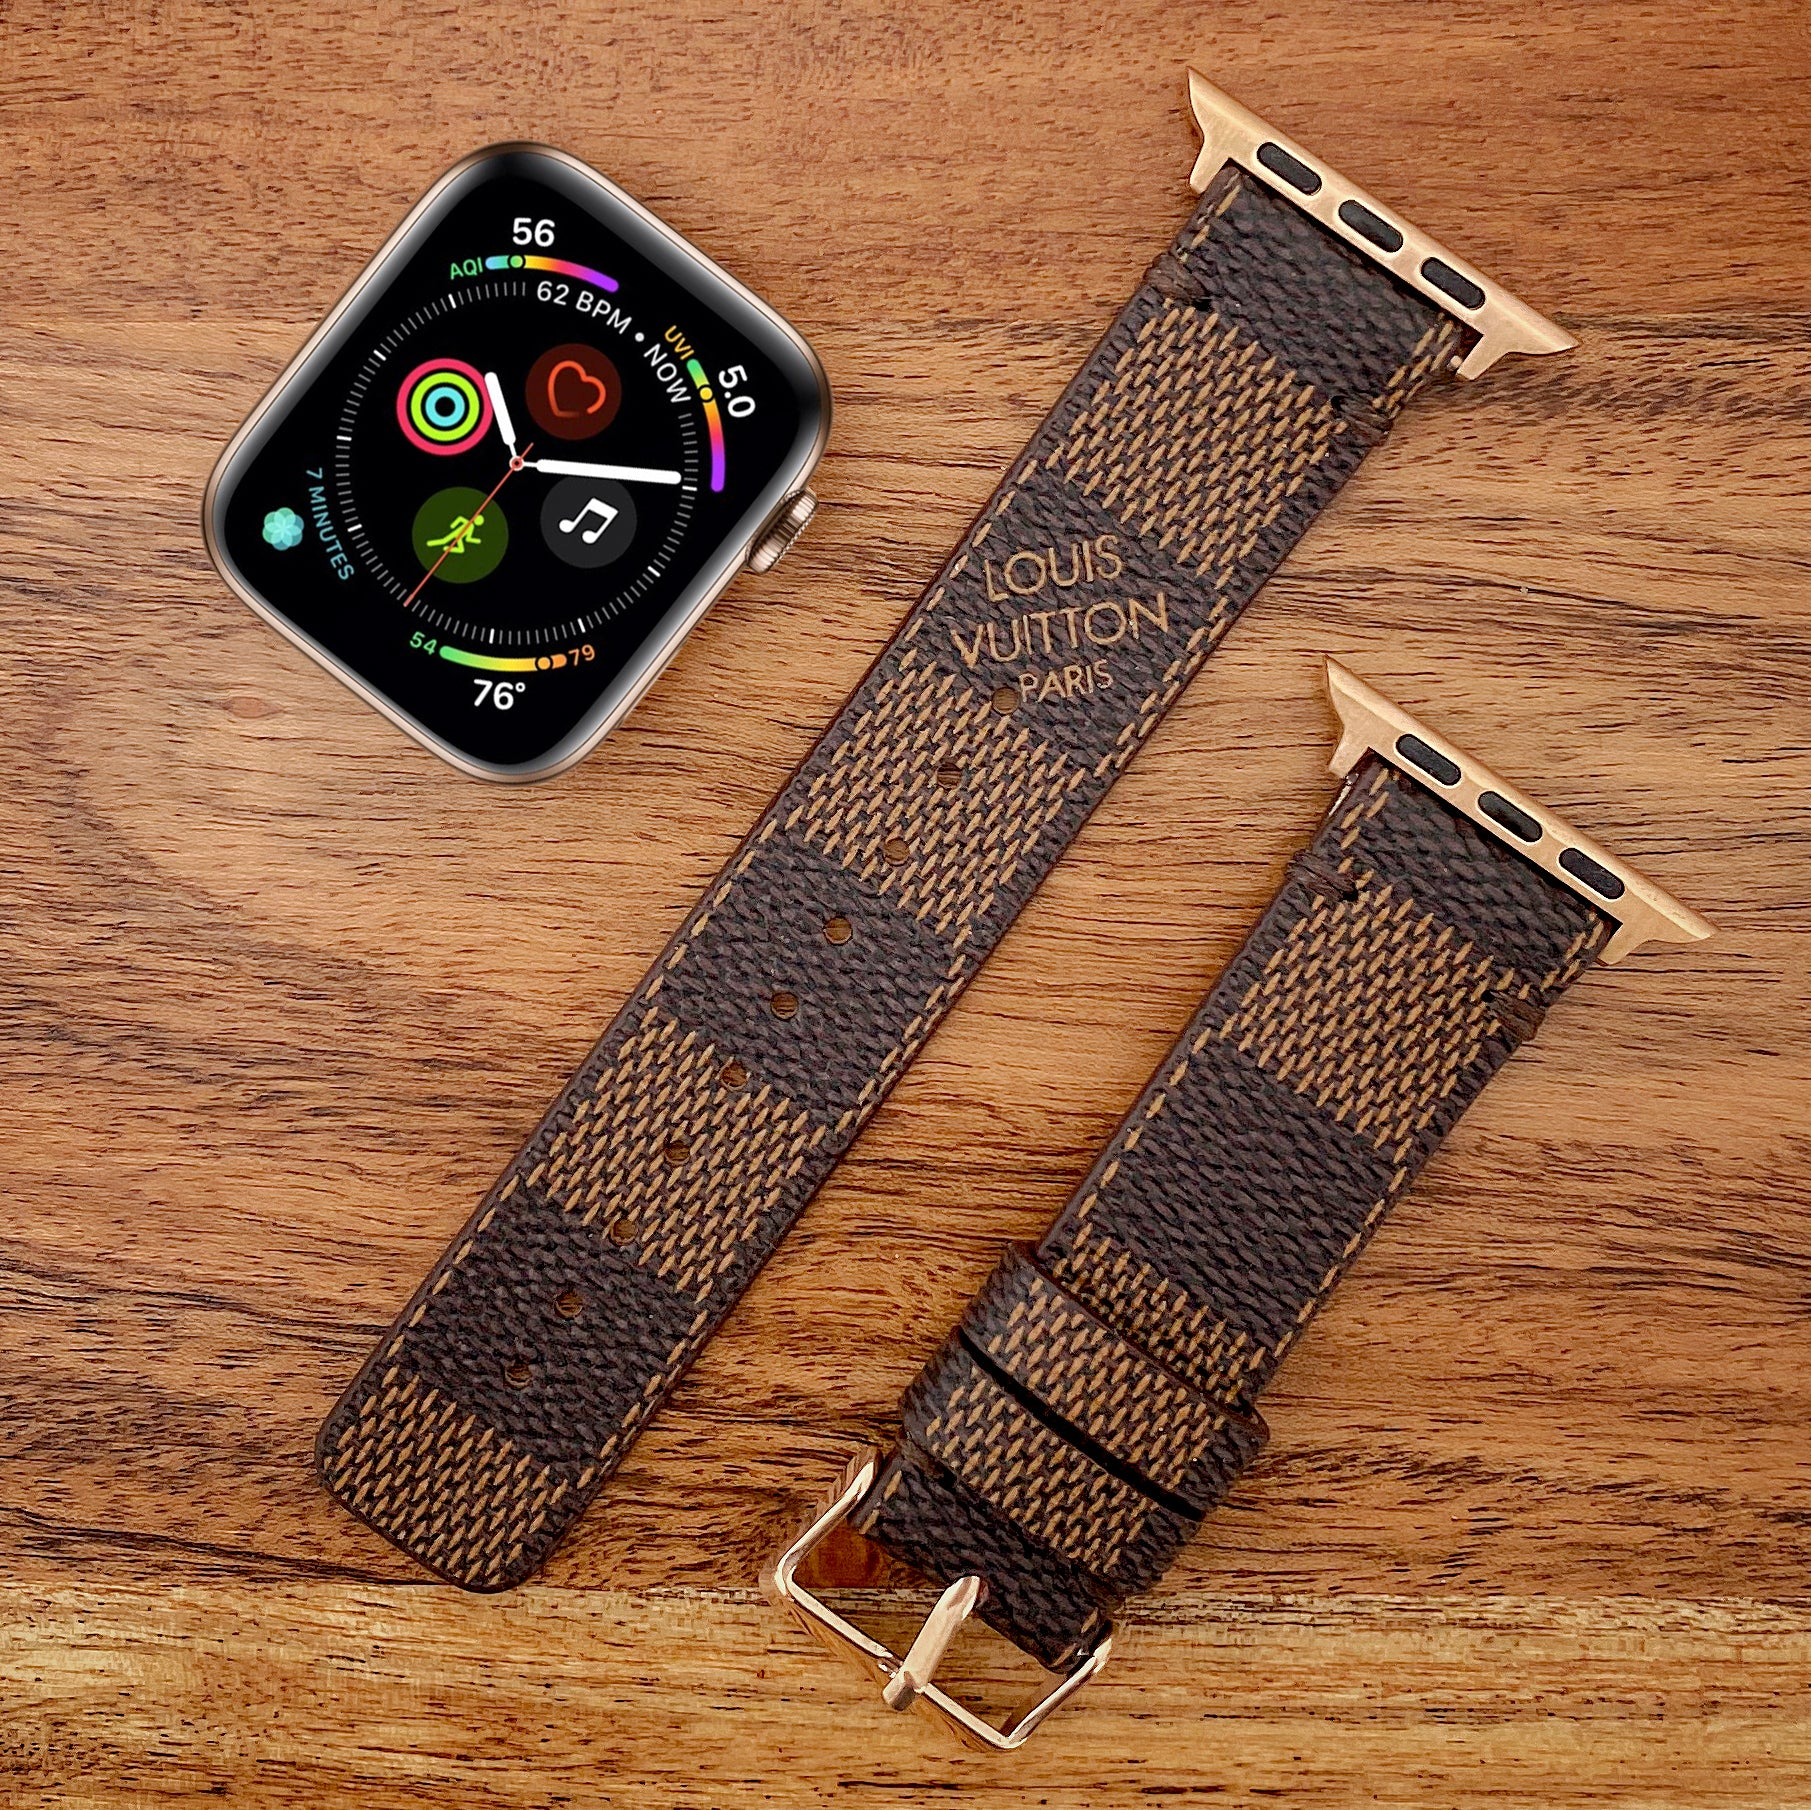 Handmade Upcycled Louis Vuitton Damier Ebene Apple Watch Band